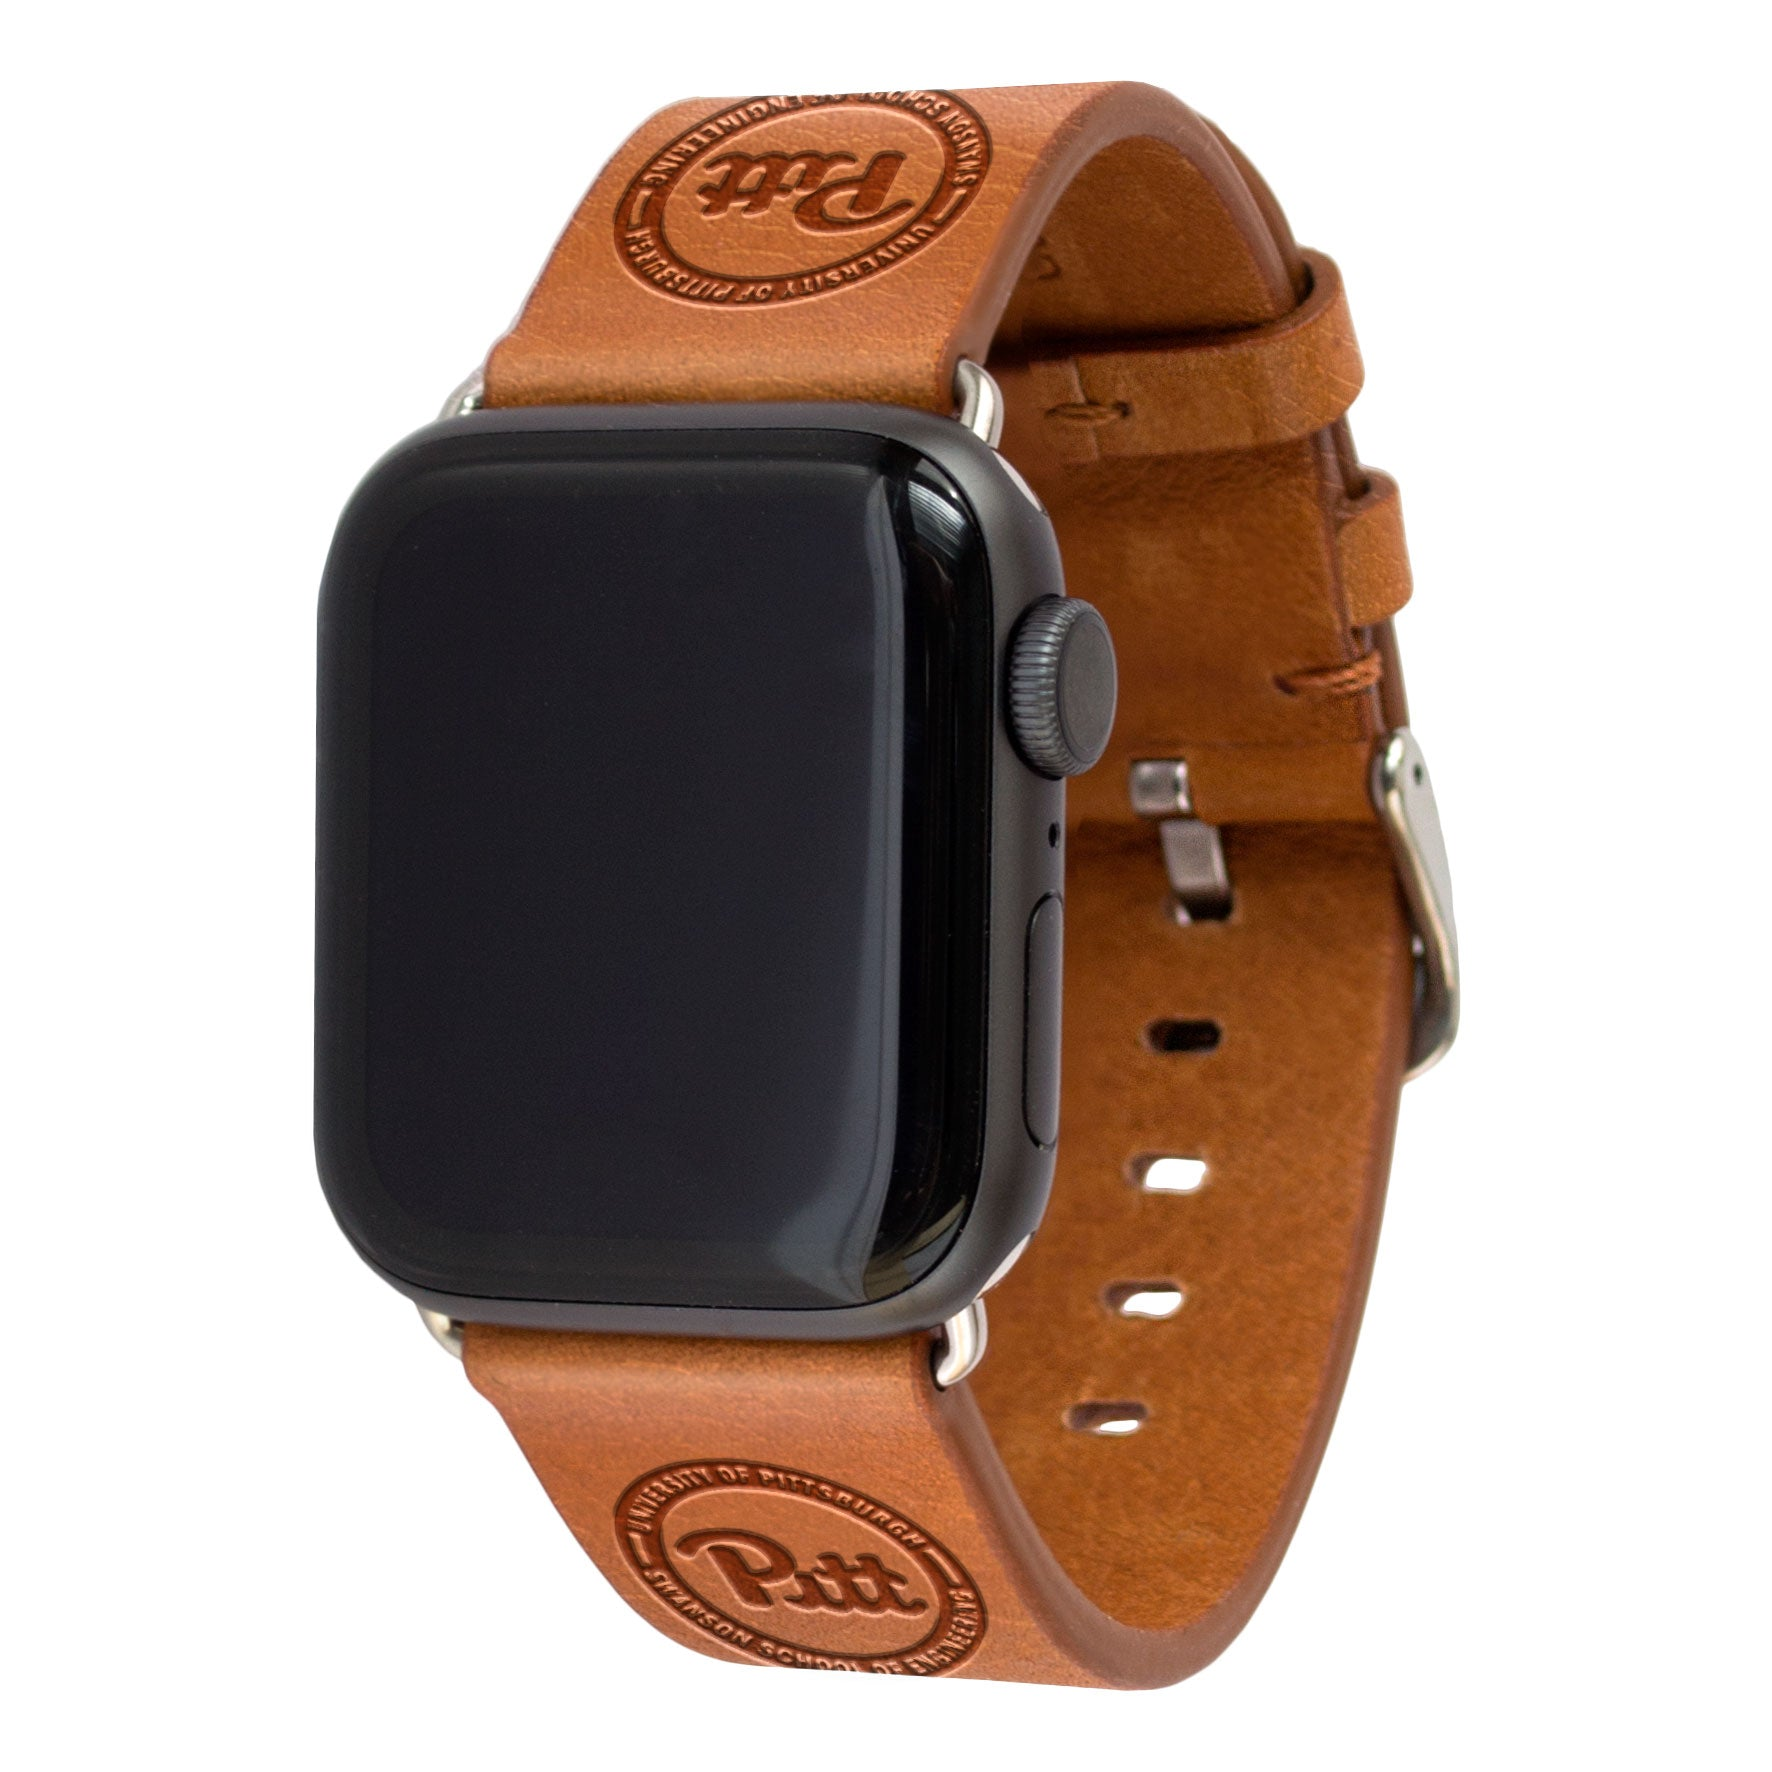 Swanson School of Engineering Leather Apple Watch Band - AffinityBands